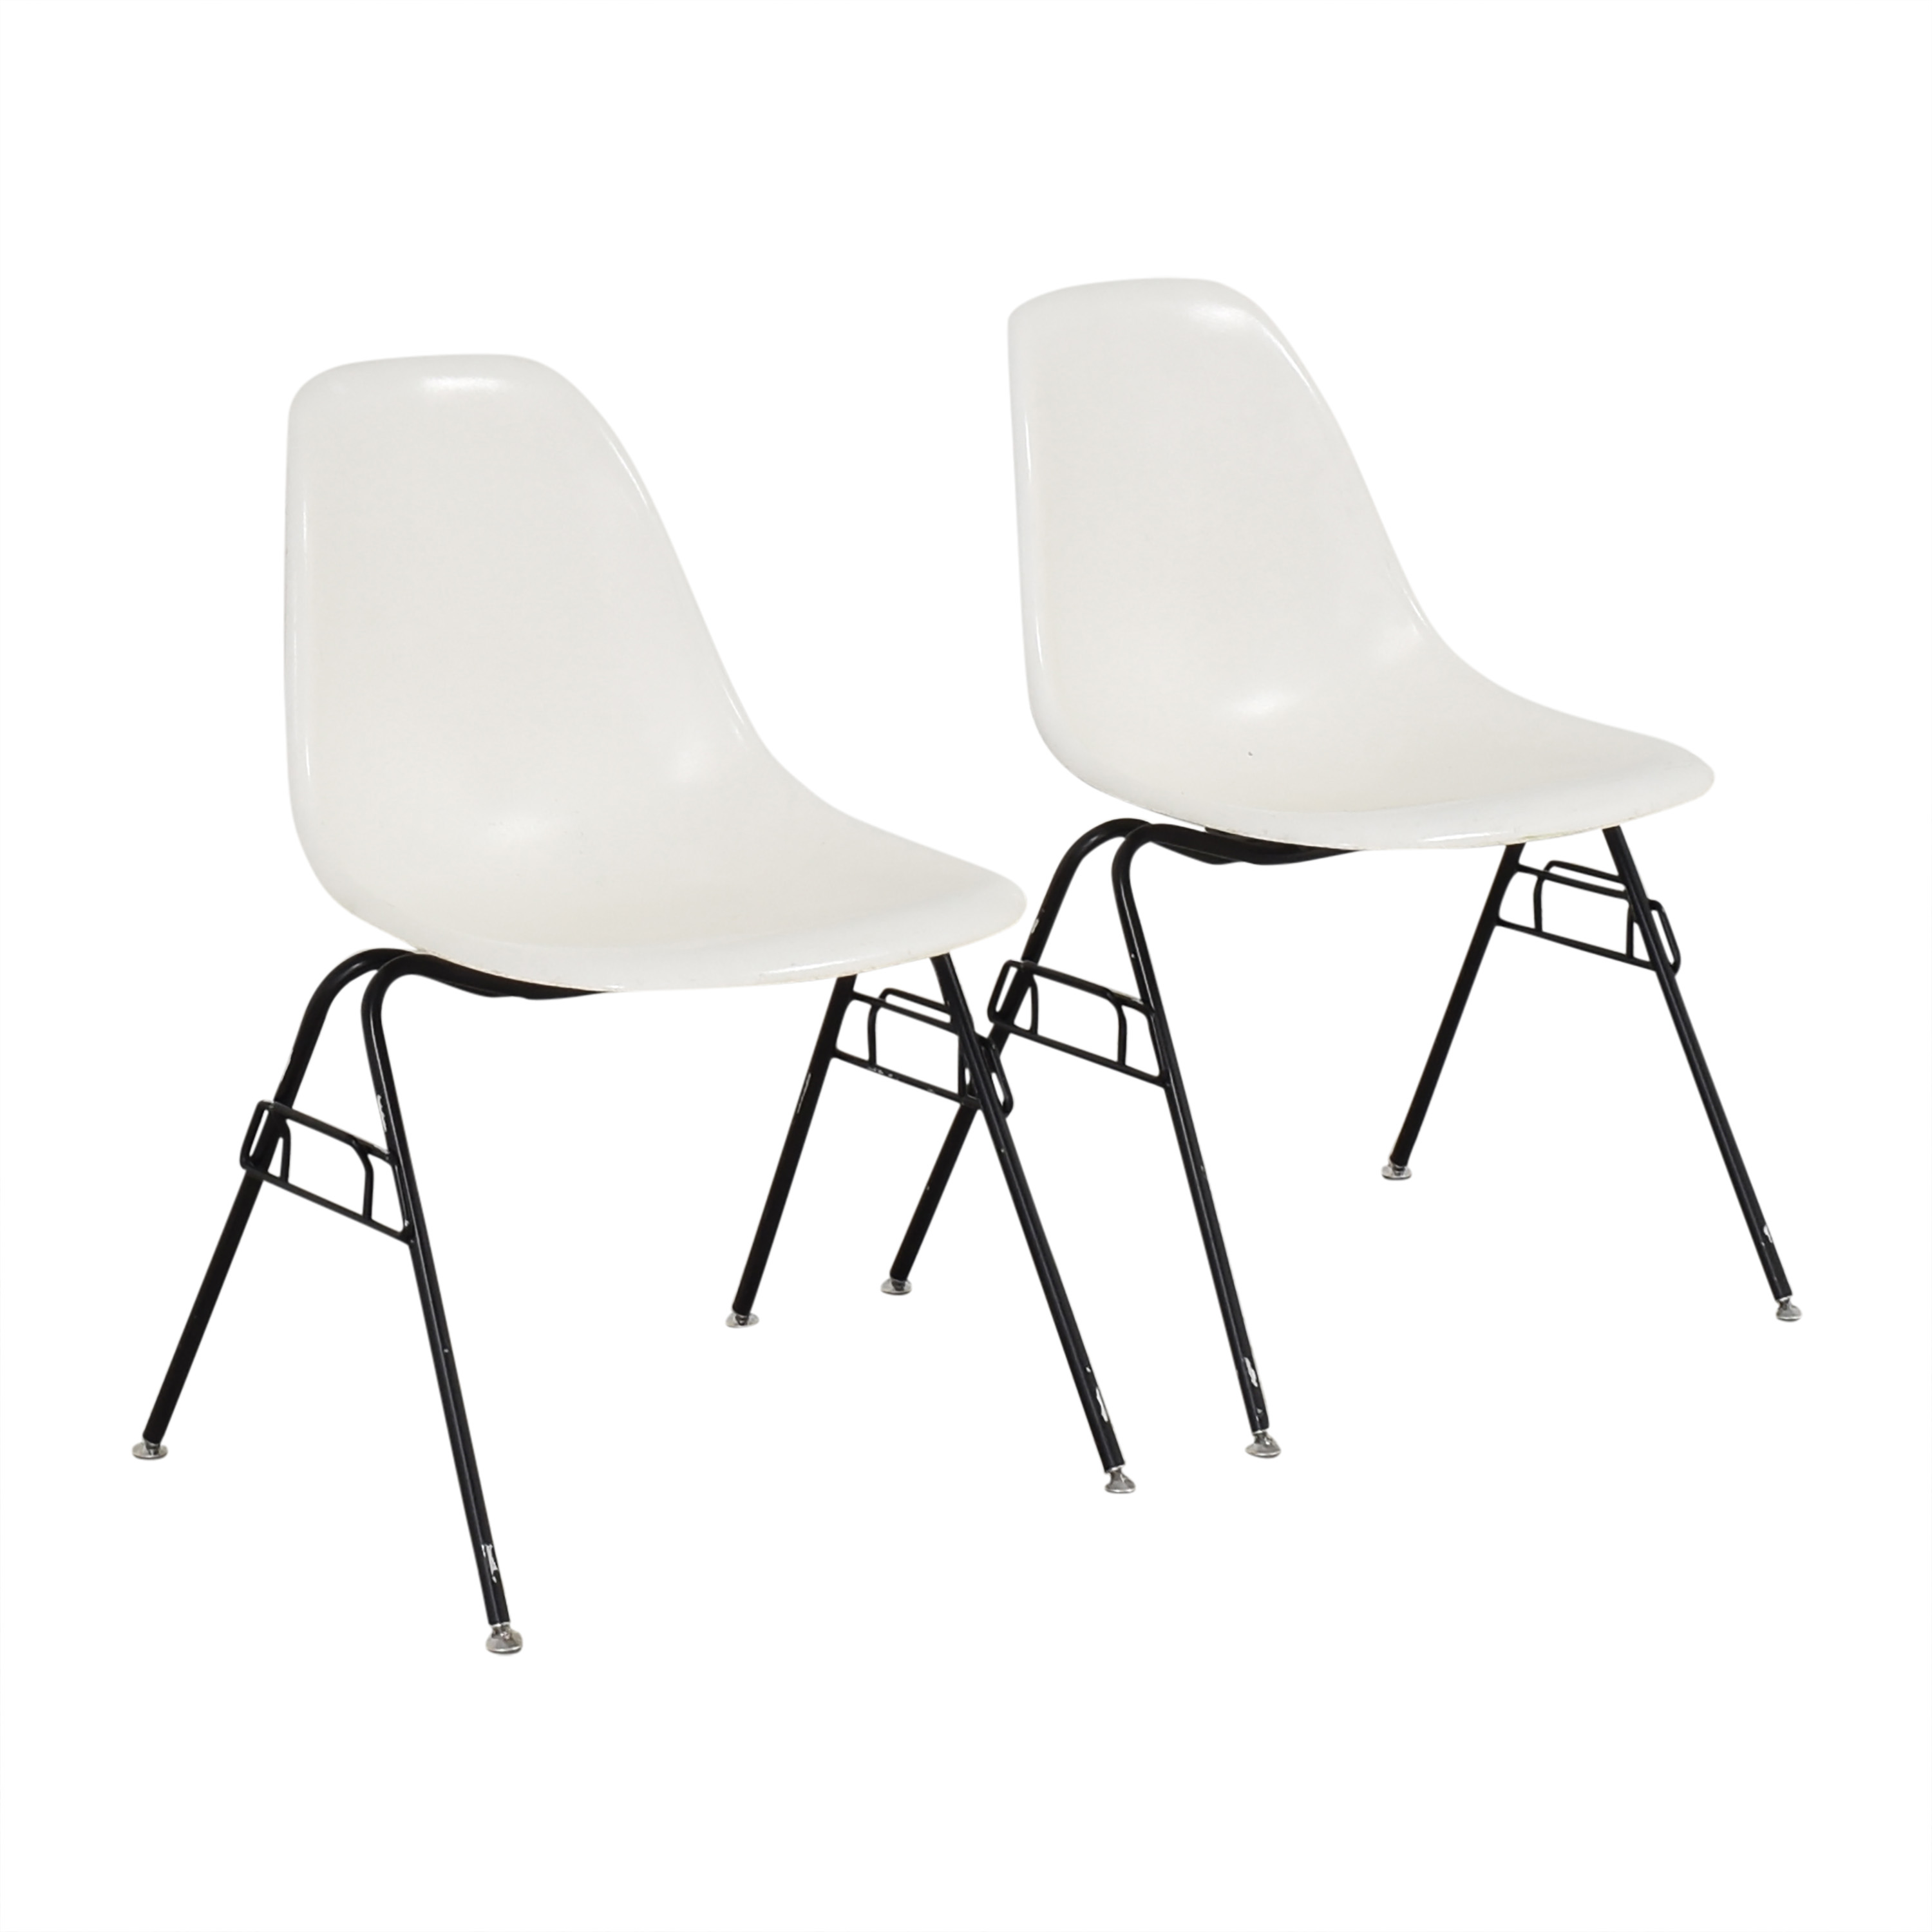 Modernica Modernica Case Study Furniture Side Shell Stacking Chairs Chairs